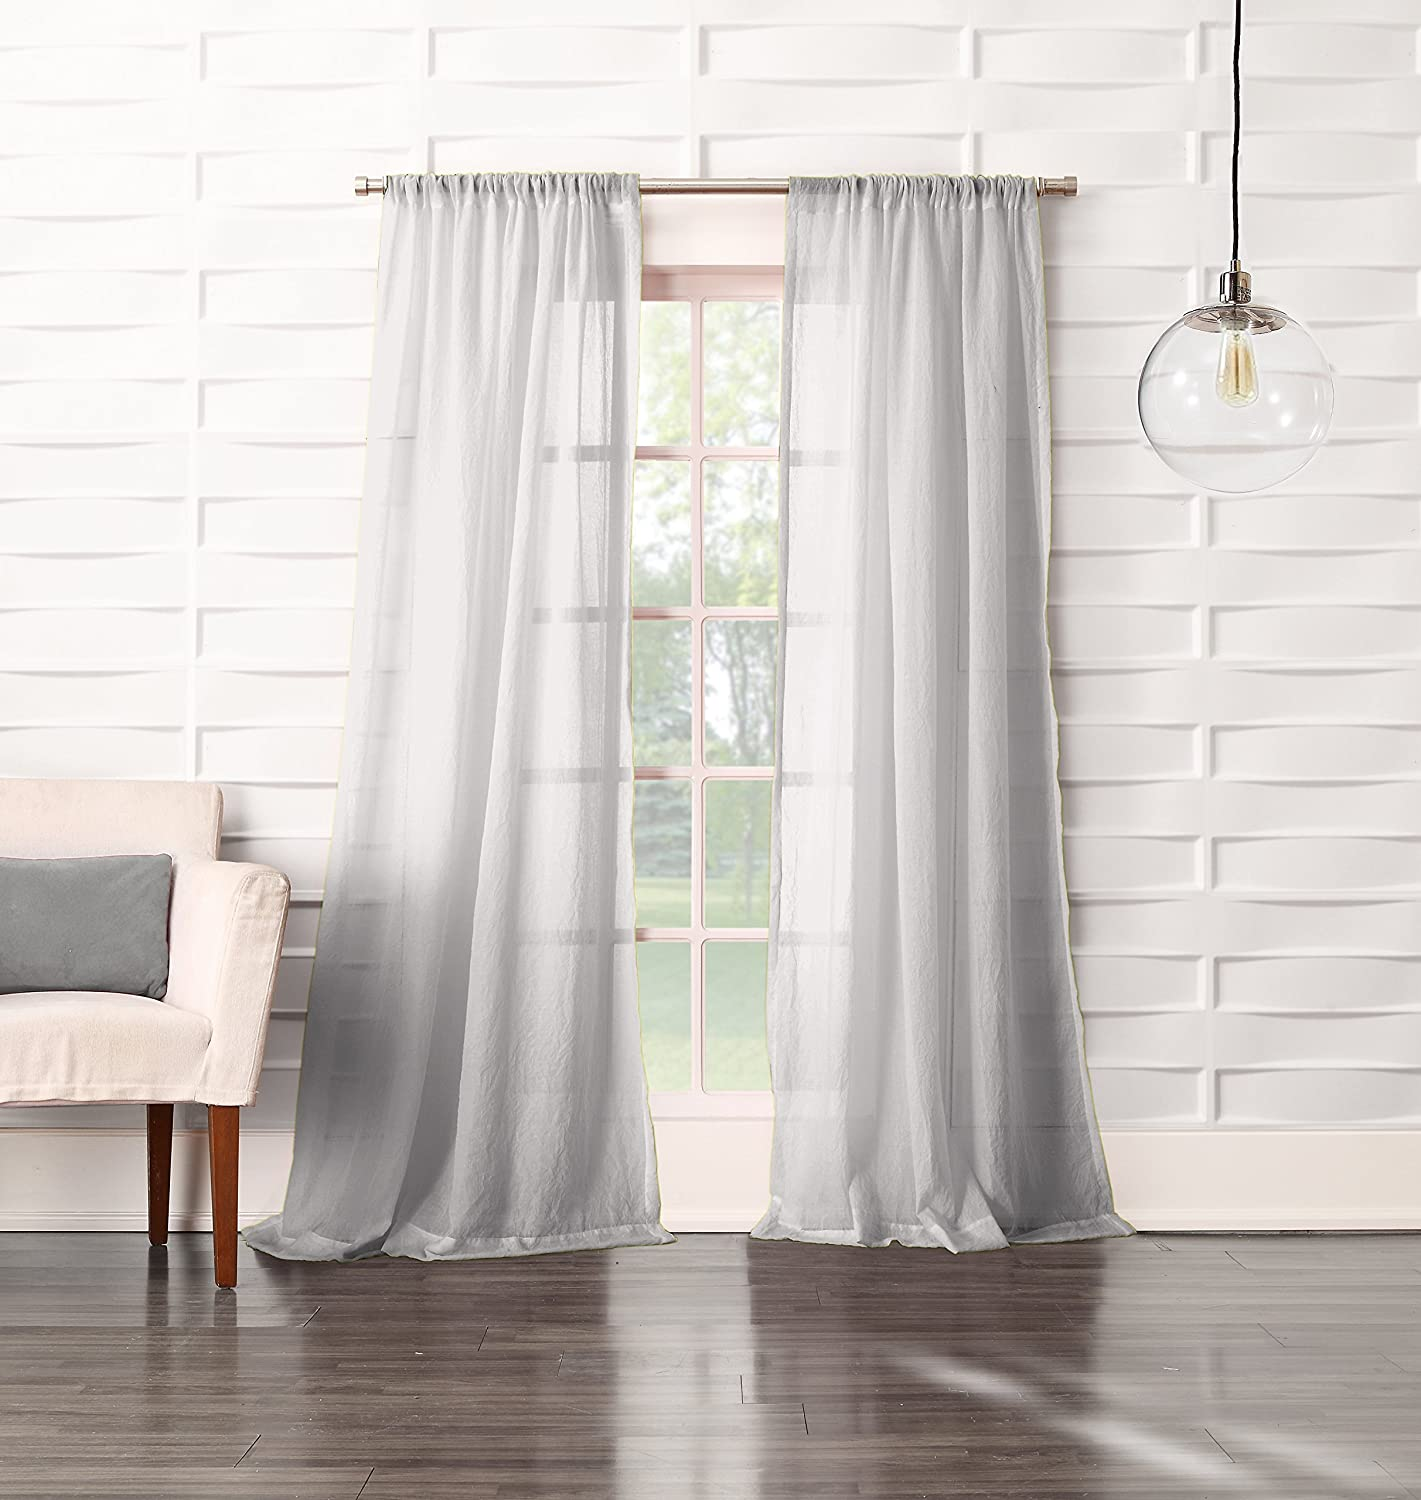 poly price sheer amazon shch sldw drapes voile home curtain kitchen com solid curtains doublewide half dp white